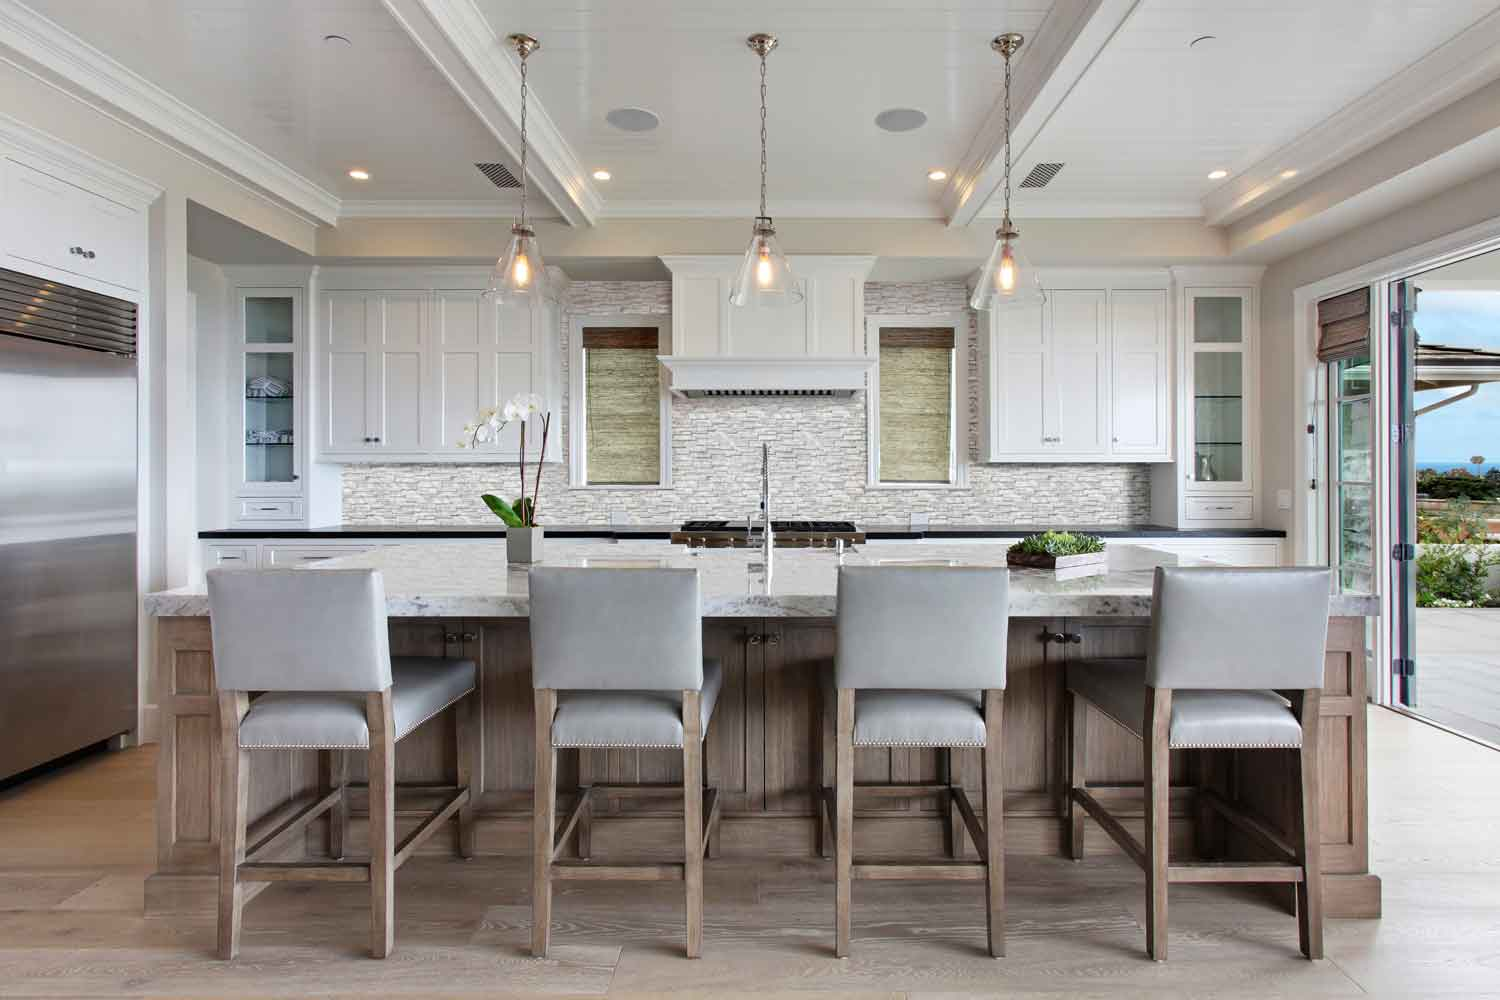 m s international, inc. to exhibit new products at kbis in orlando